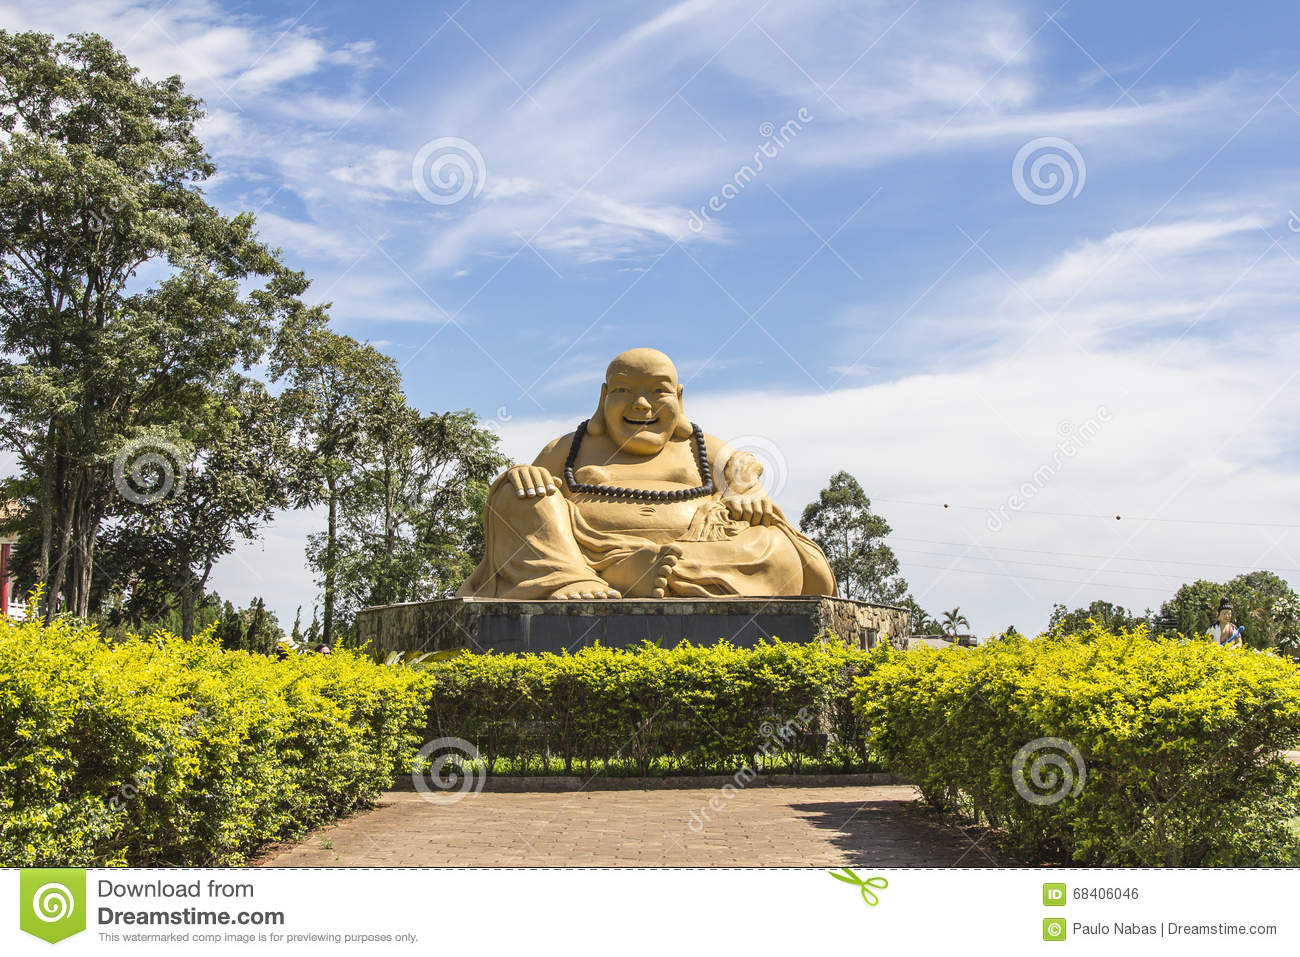 Giant Buda, Buddhist Temple, Foz Do Iguacu, Brazil. Stock Photo.